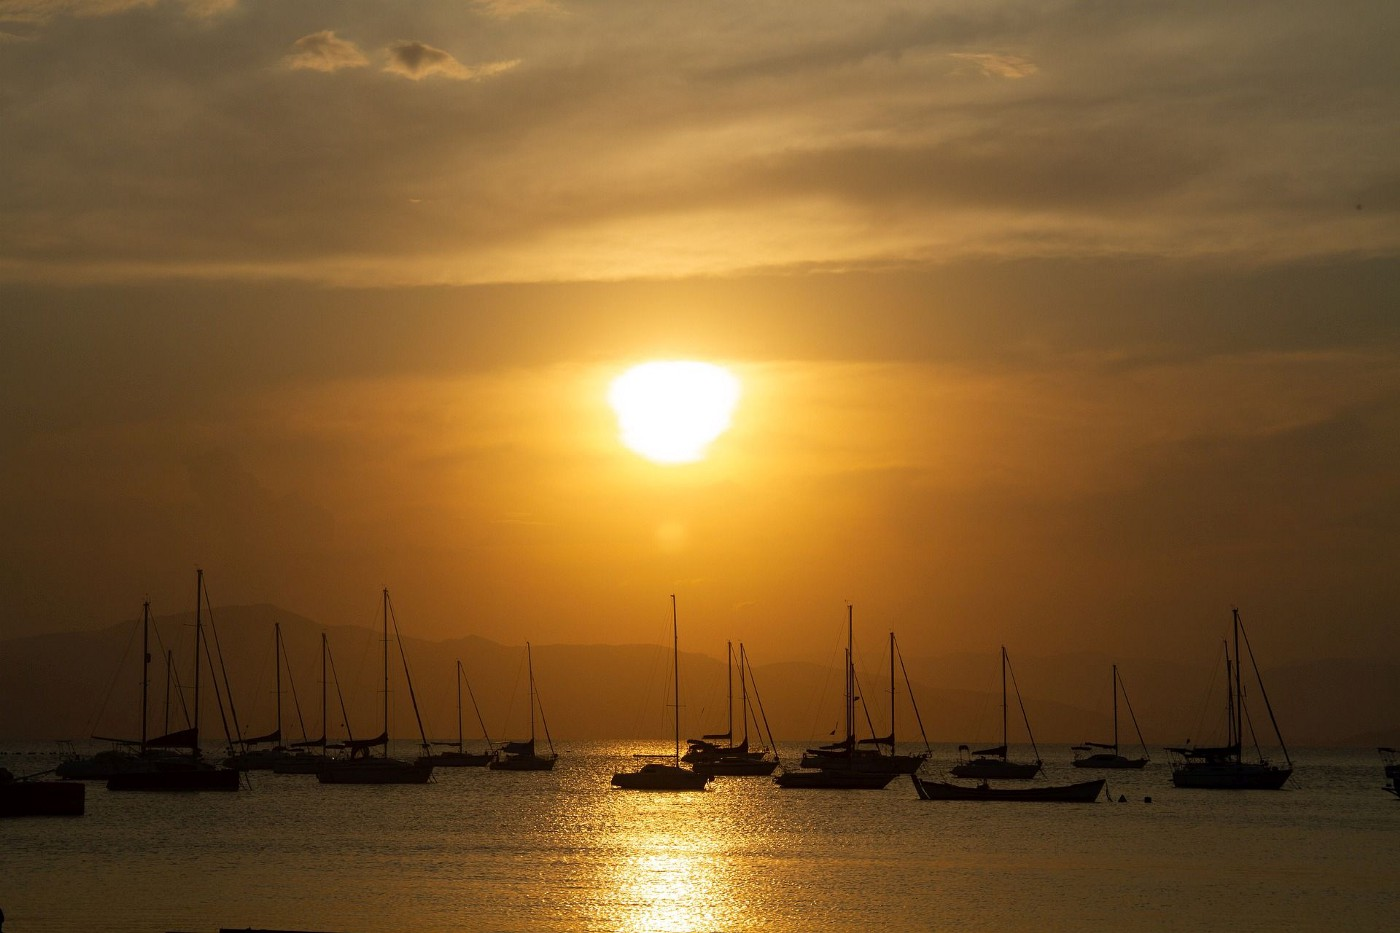 A bronze sunset with a group of sailboats in the foreground